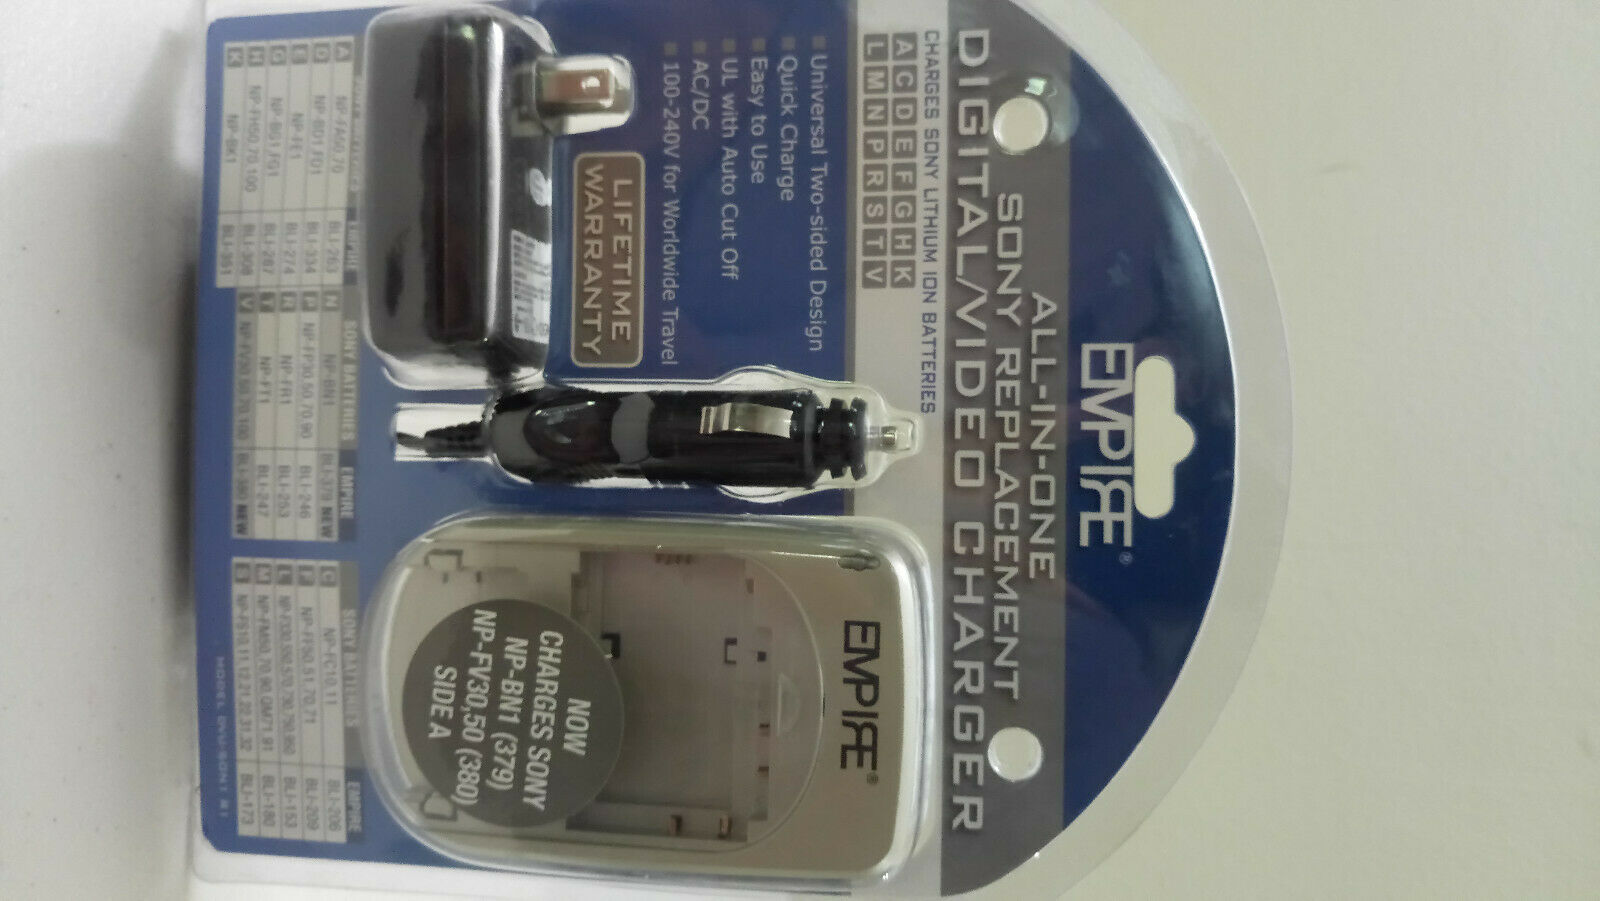 EMPIRE Sony-All In One Replacement Digital/Video Charger- Model R1